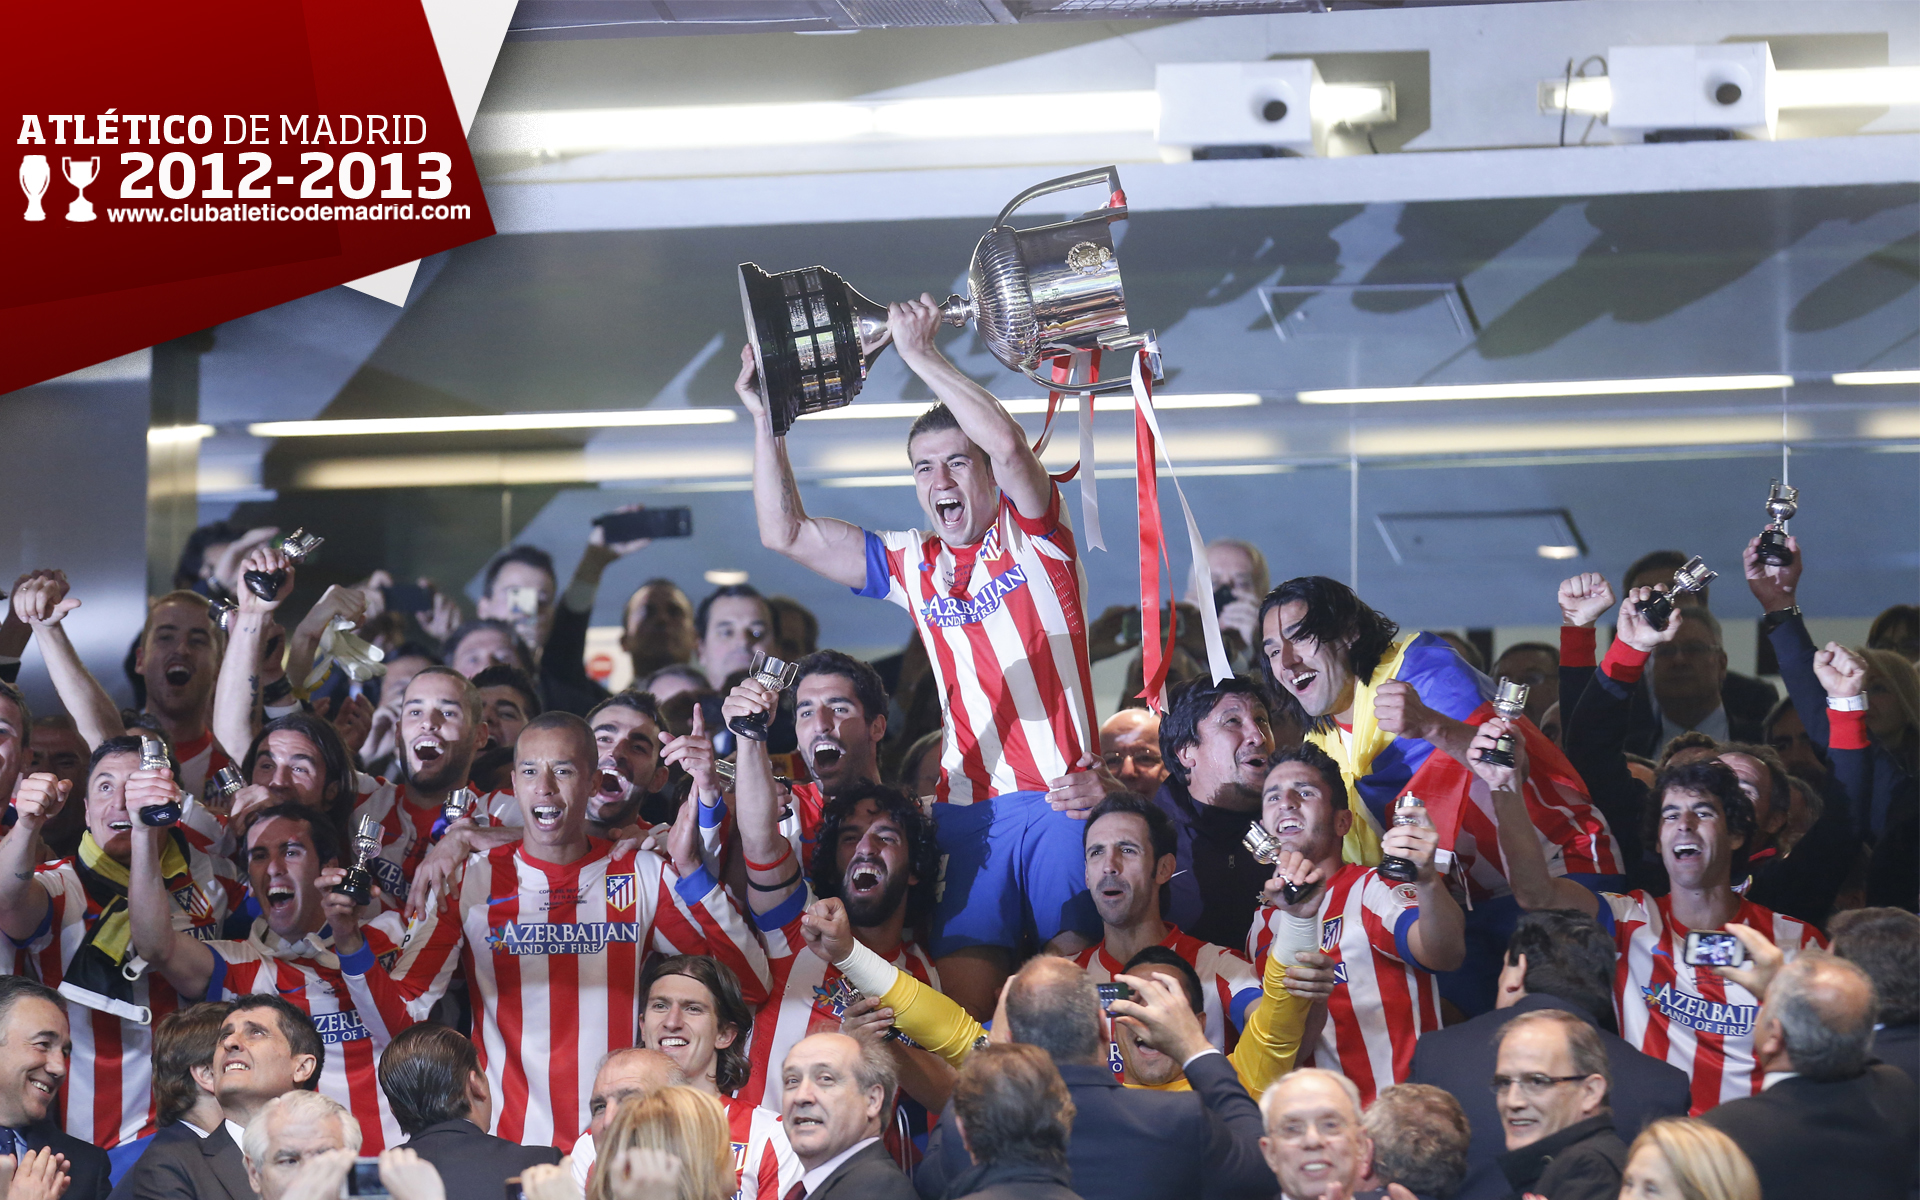 Club atltico de madrid web oficial download our wallpapers donwload 1920 x 1200 voltagebd Choice Image